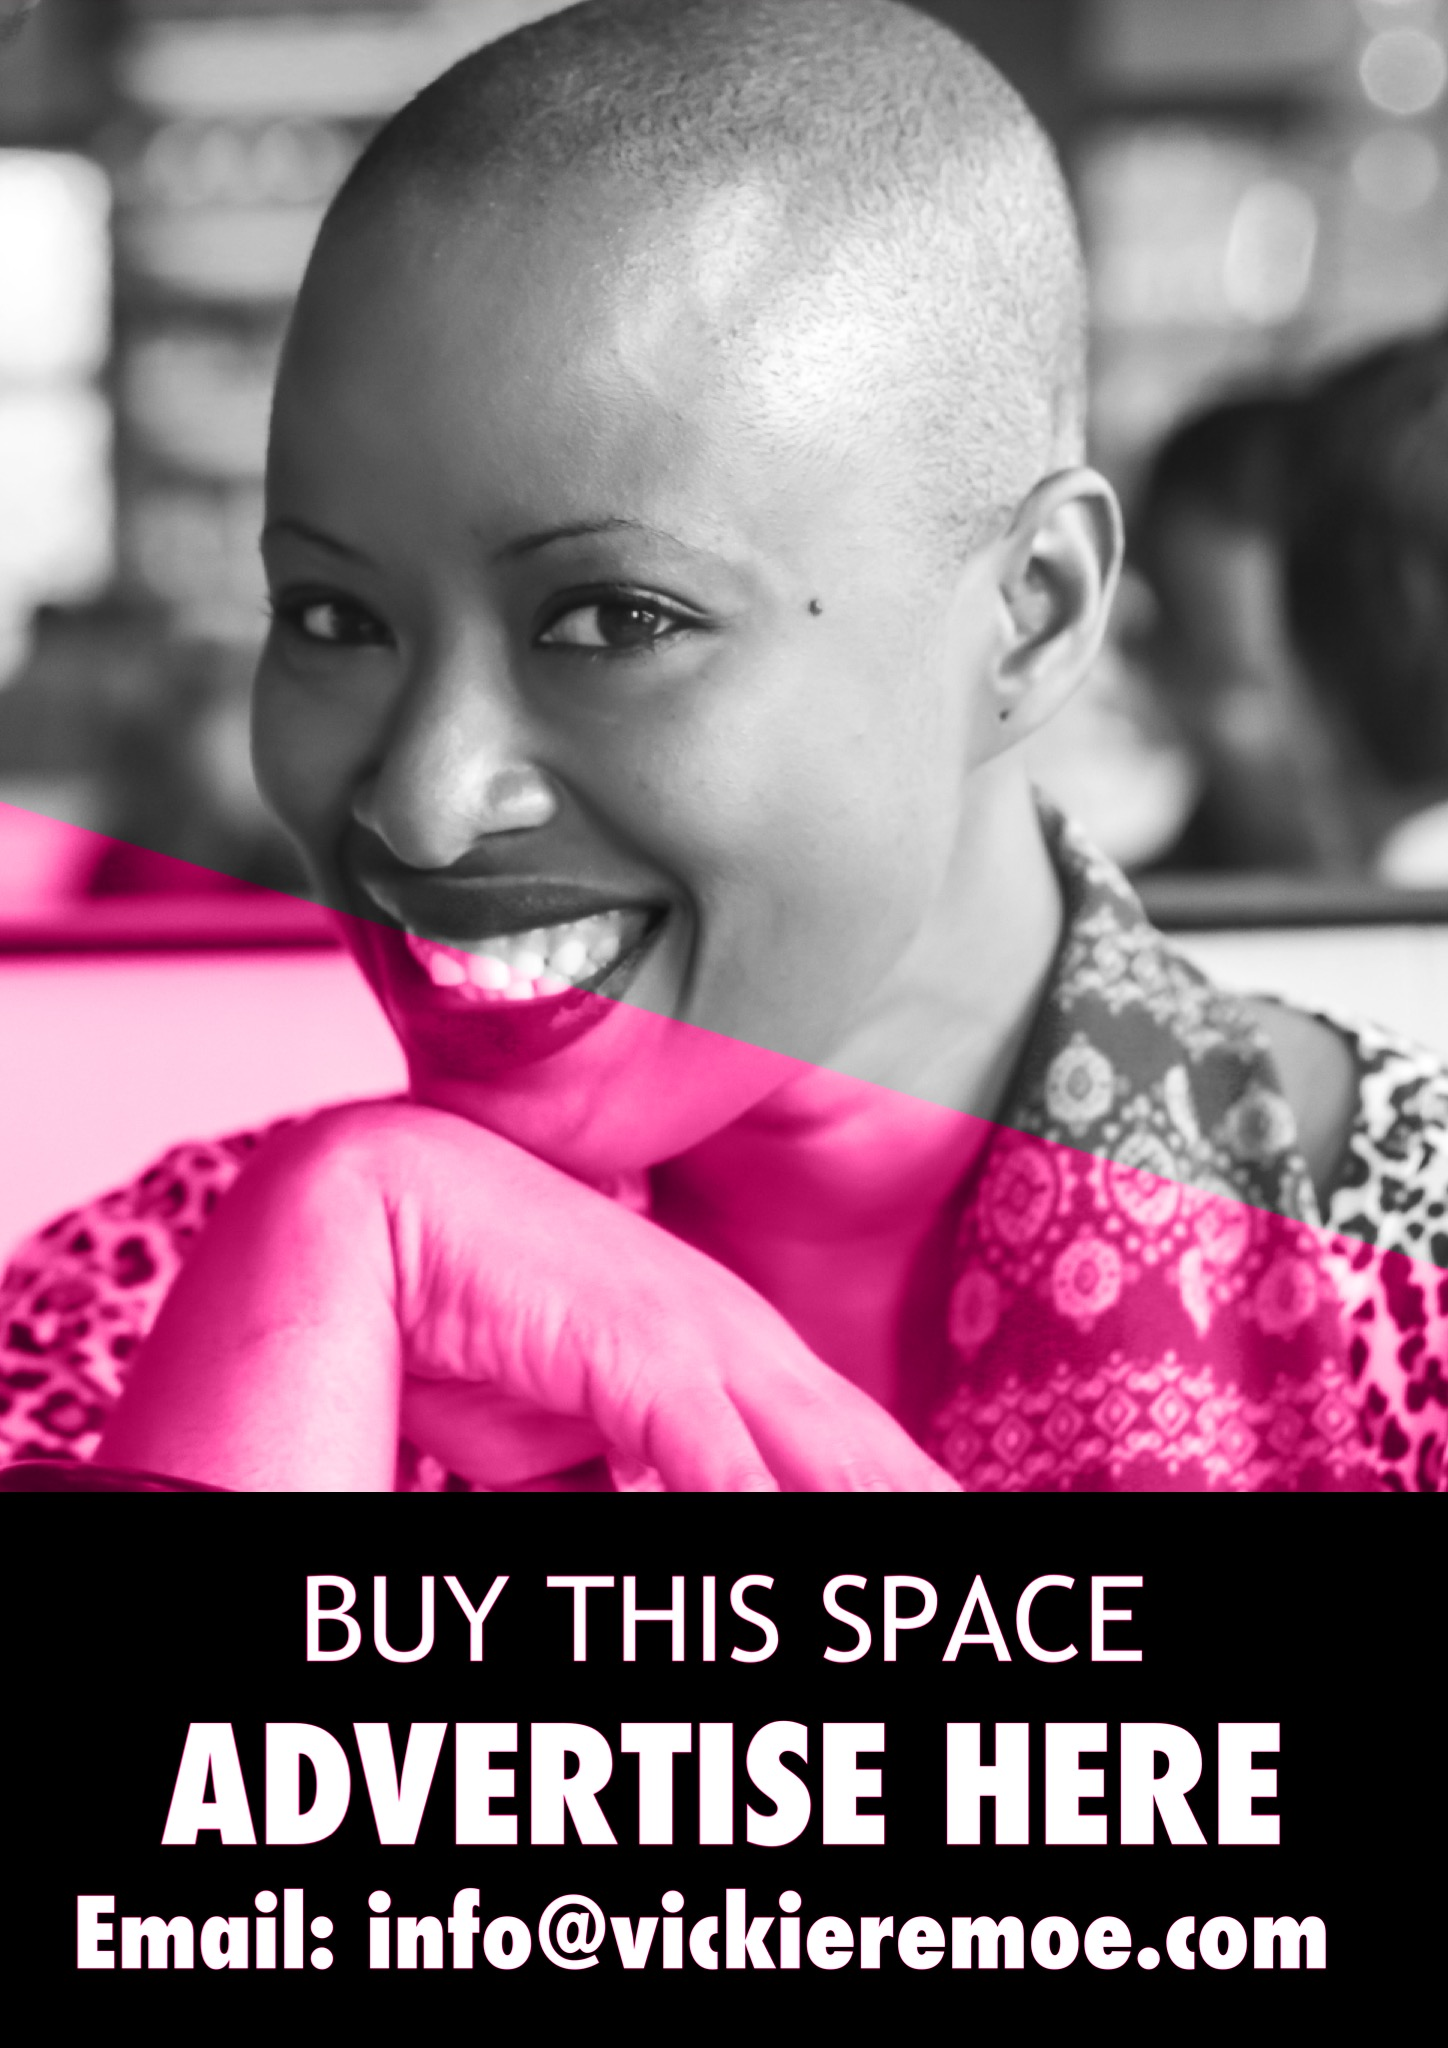 BUY THIS SPACE